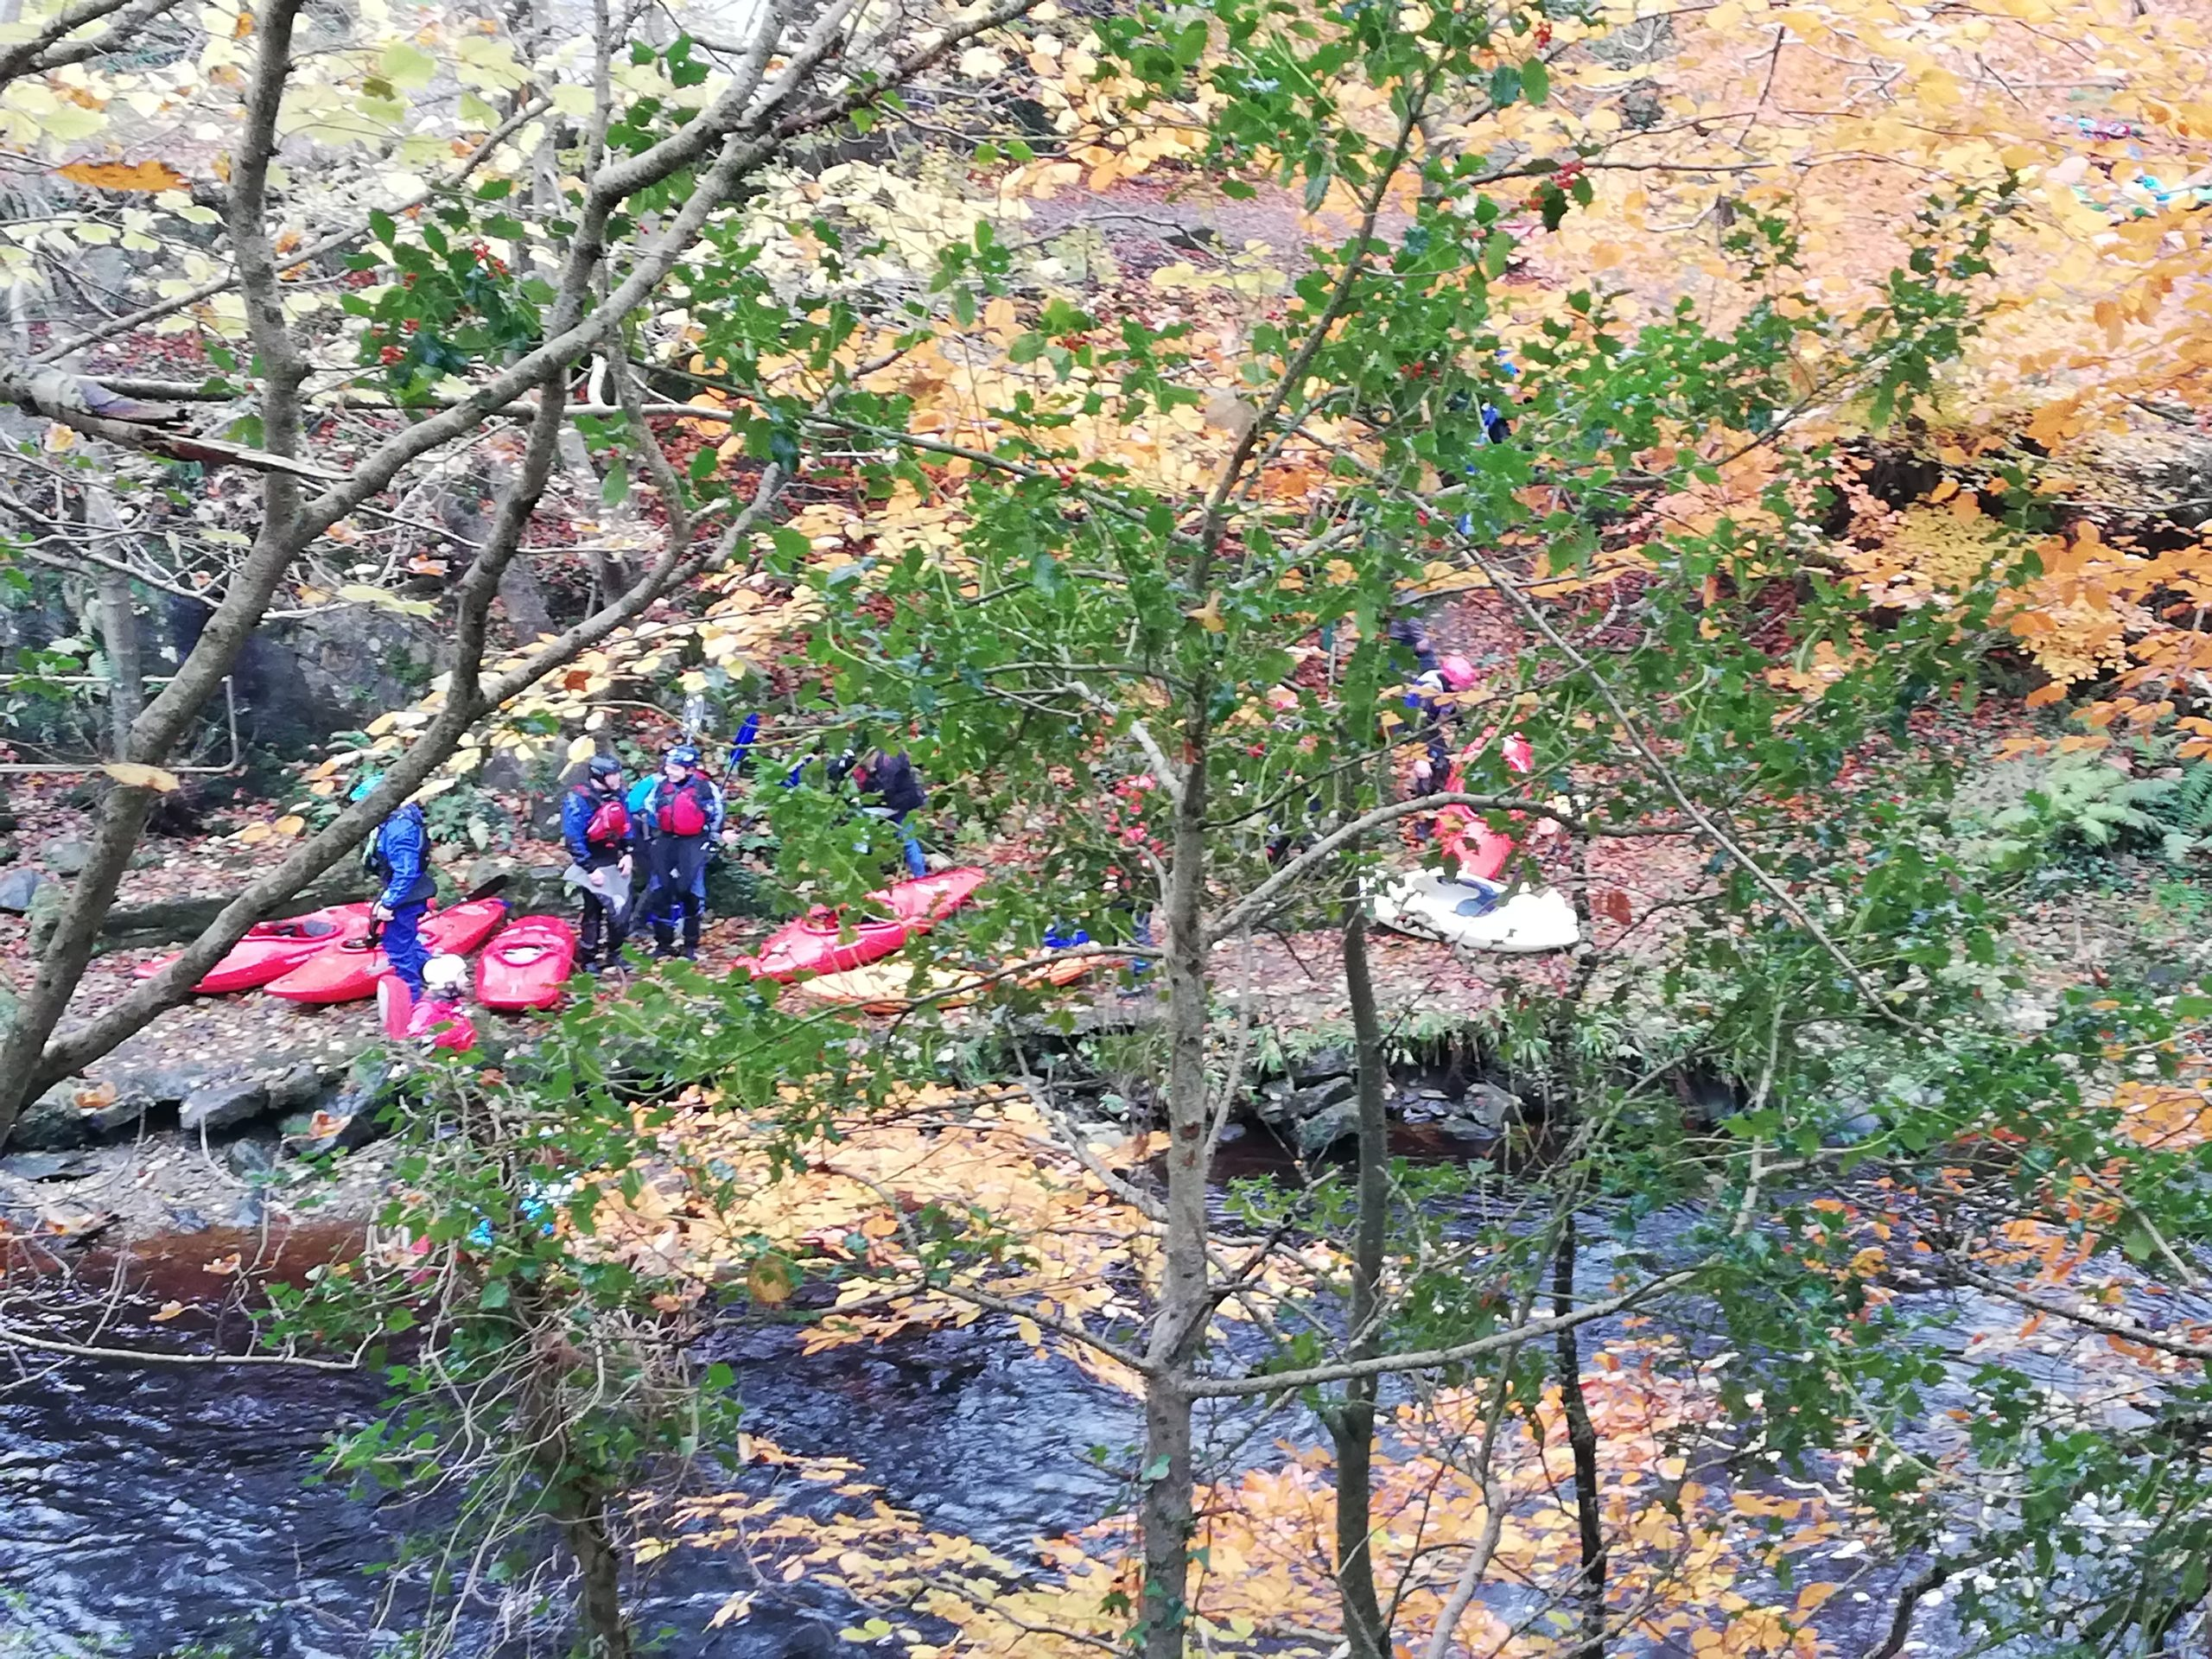 Activities in Inishowen include kayaking on the Crana River with Inish Adventure